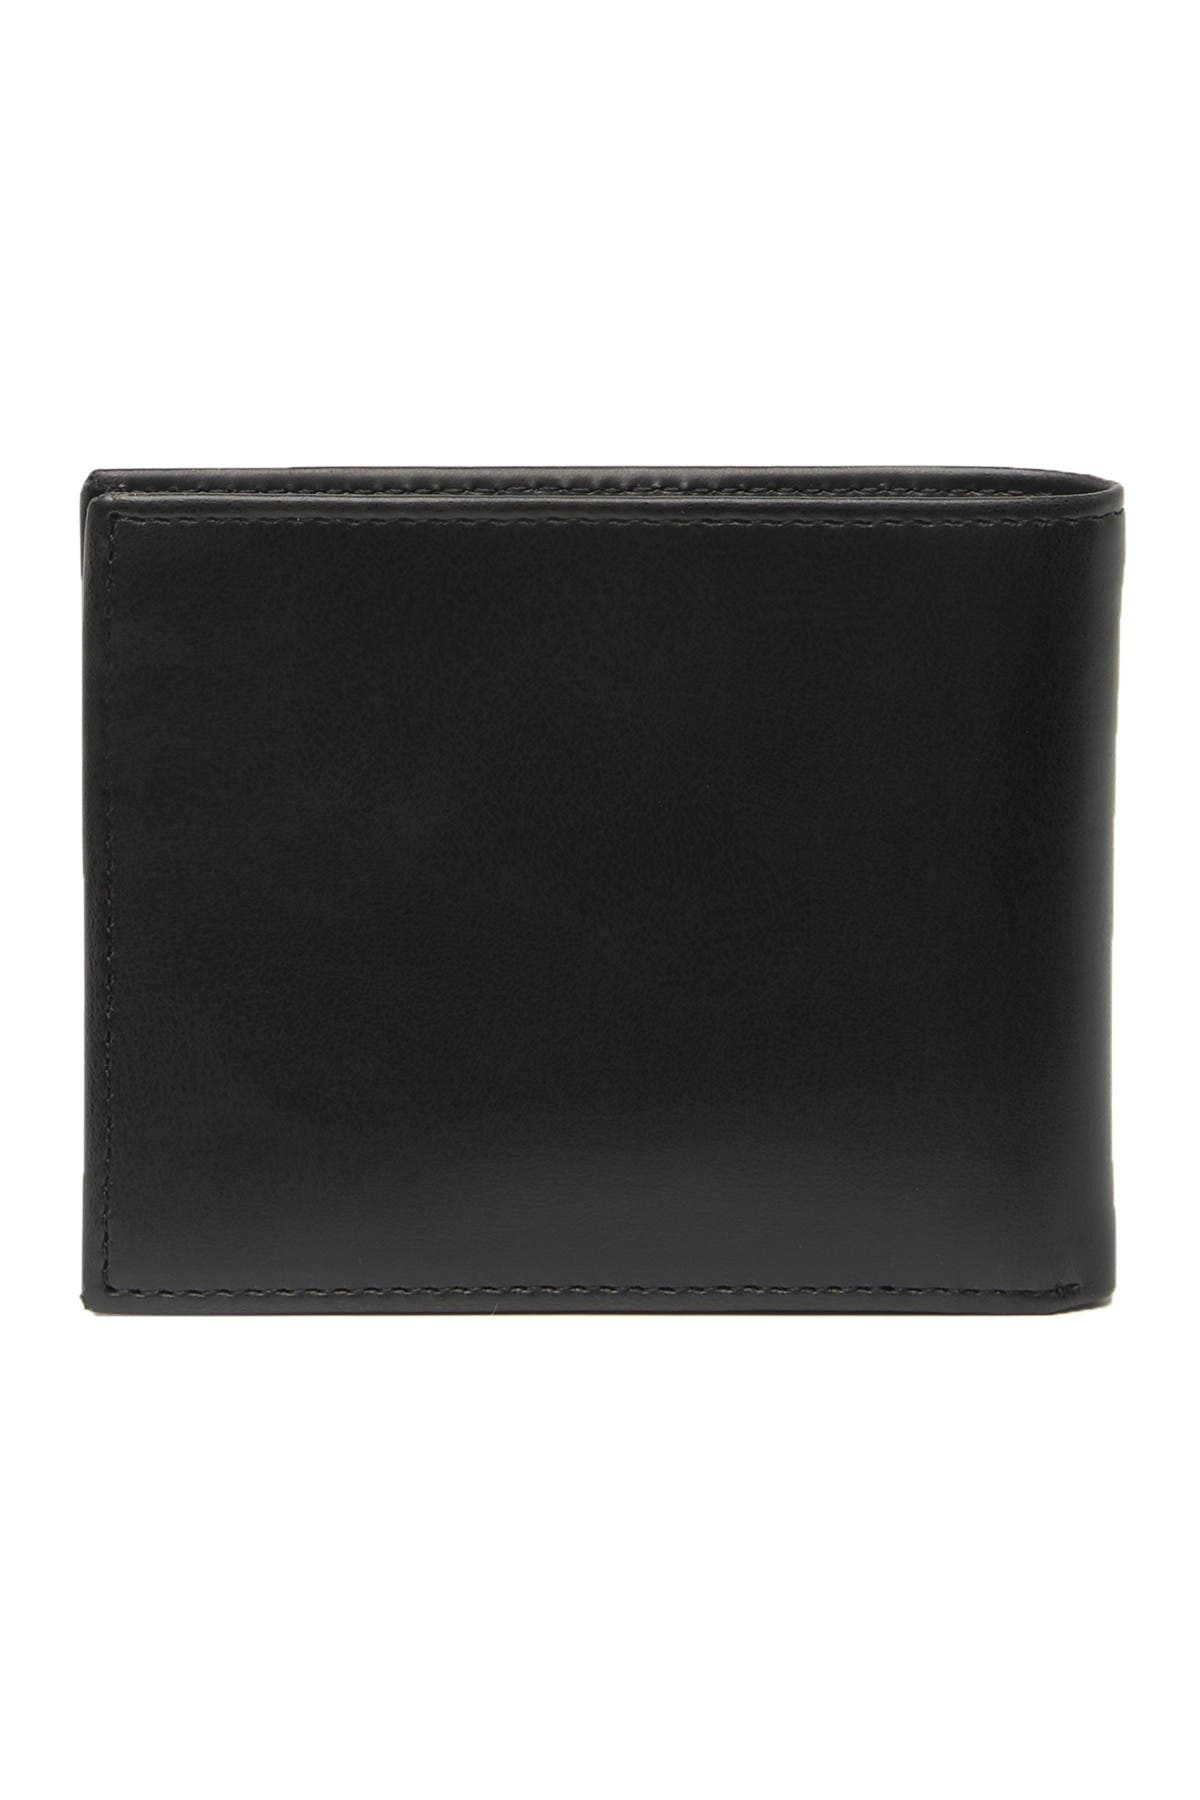 Image of GUESS Moxley Sewn Passcase Wallet